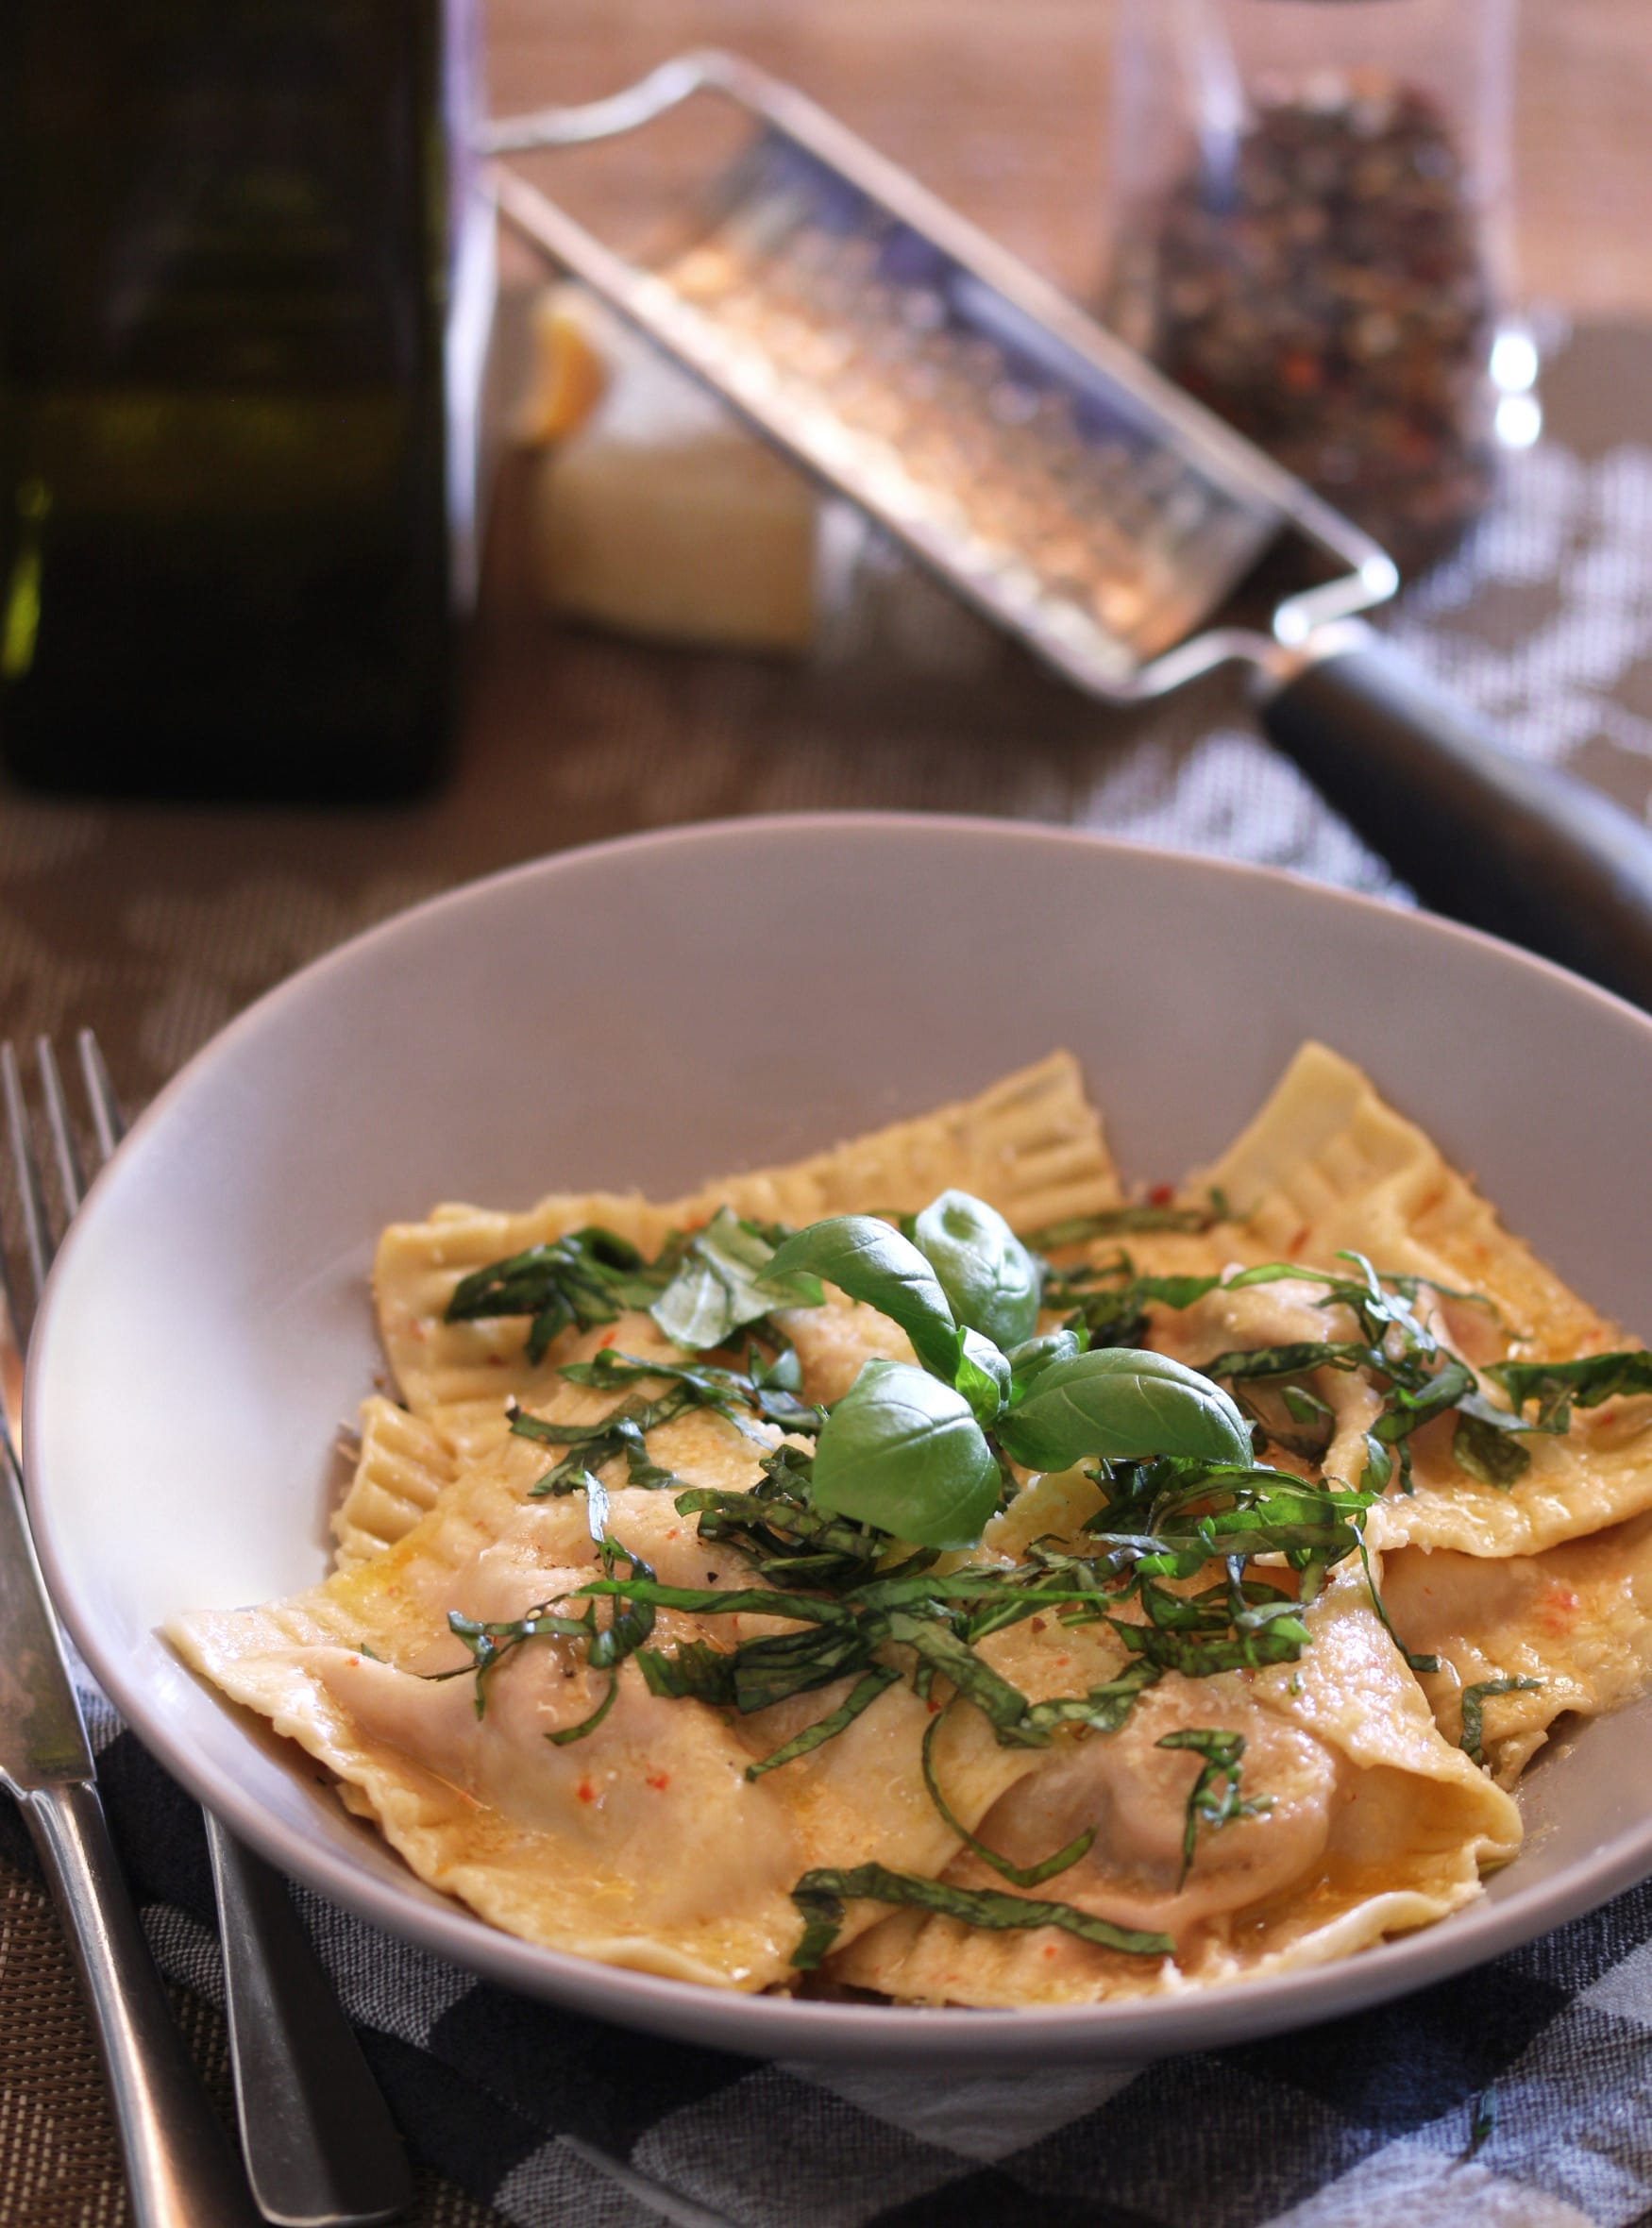 Pork sausage and red pepper ravioli with lemon butter sauce